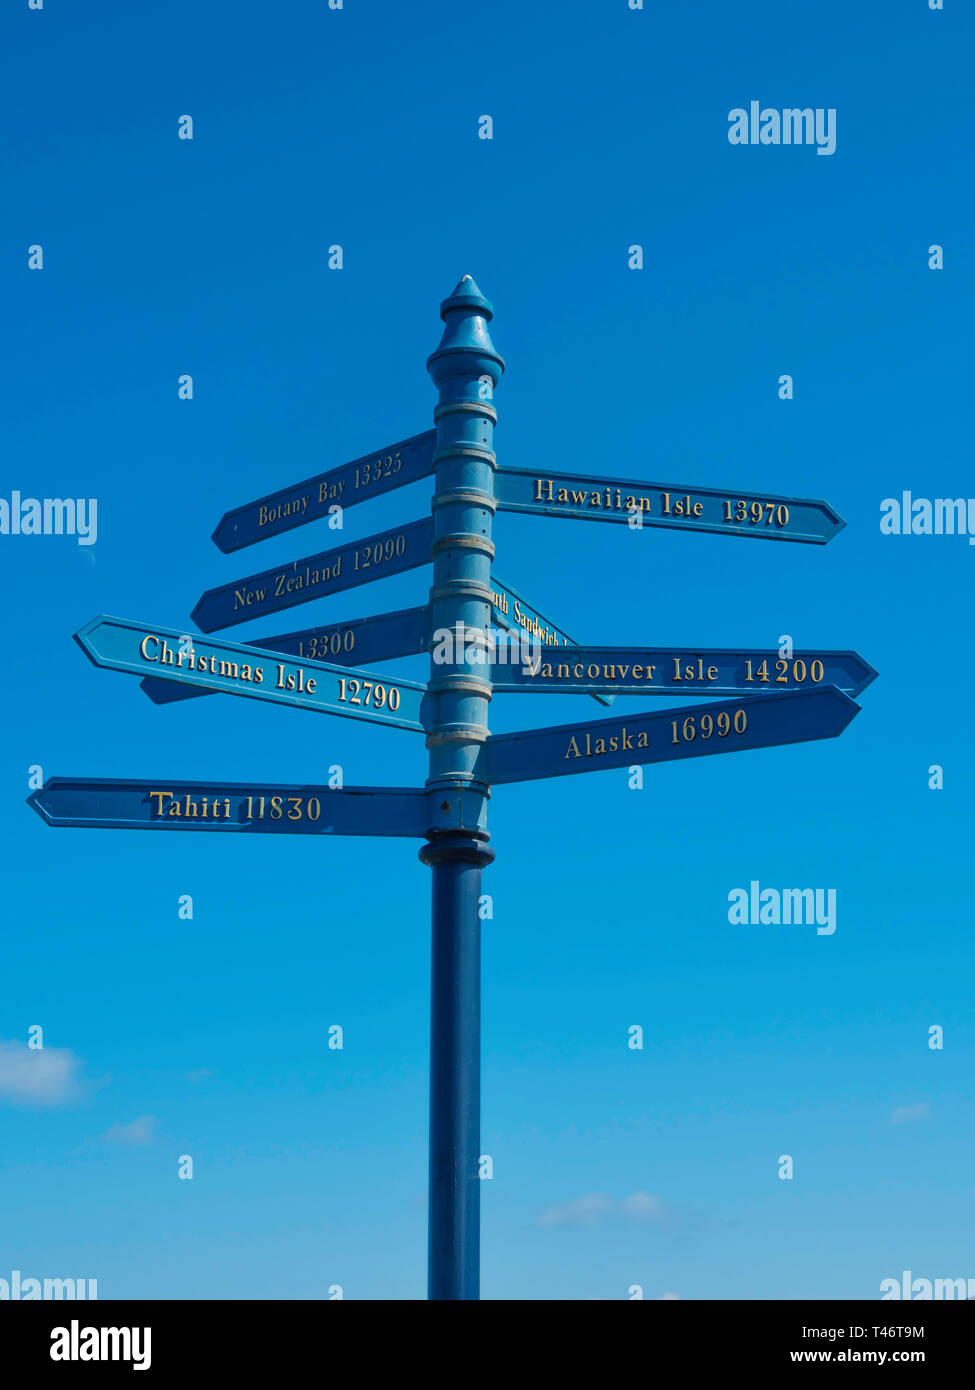 A signpost in Whitby showing distances sailed in Nautical Miles to places discovered by the famous navigator Captain James Cook Stock Photo